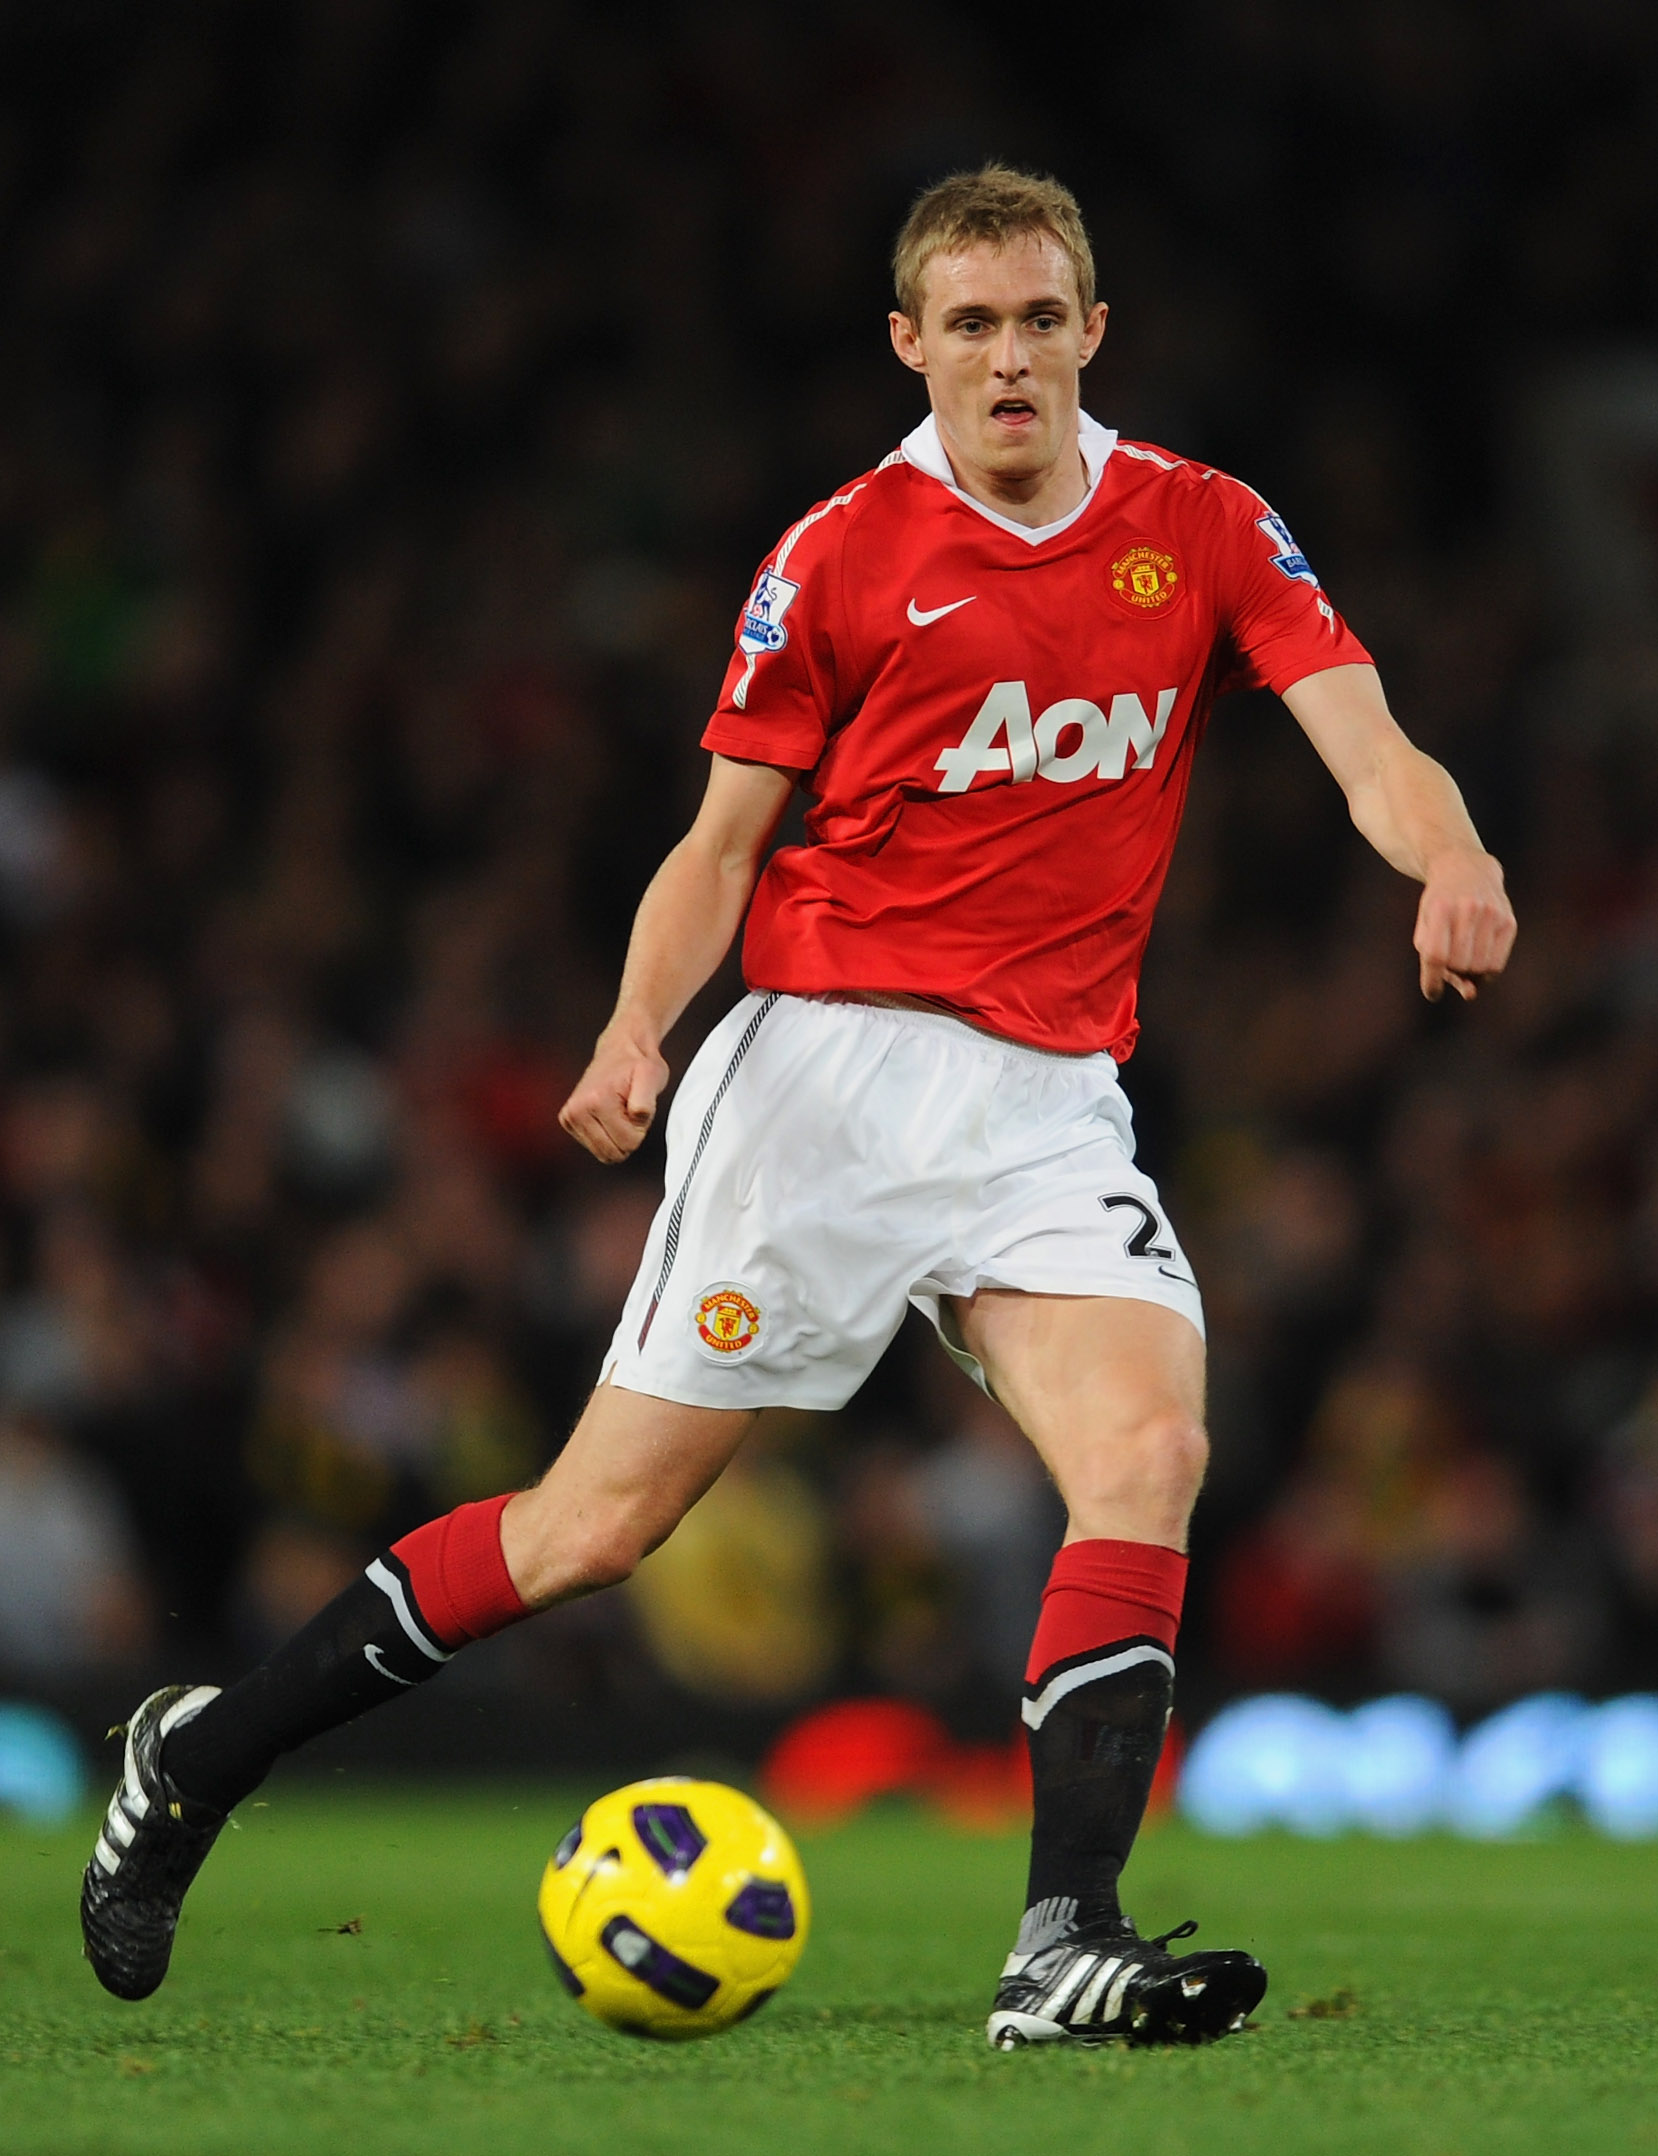 MANCHESTER, ENGLAND - OCTOBER 30: Darren Fletcher of Manchester United playes the ball during the Barclays Premier League match between Manchester United and Tottenham Hotspur at Old Trafford on October 30, 2010 in Manchester, England.  (Photo by Michael